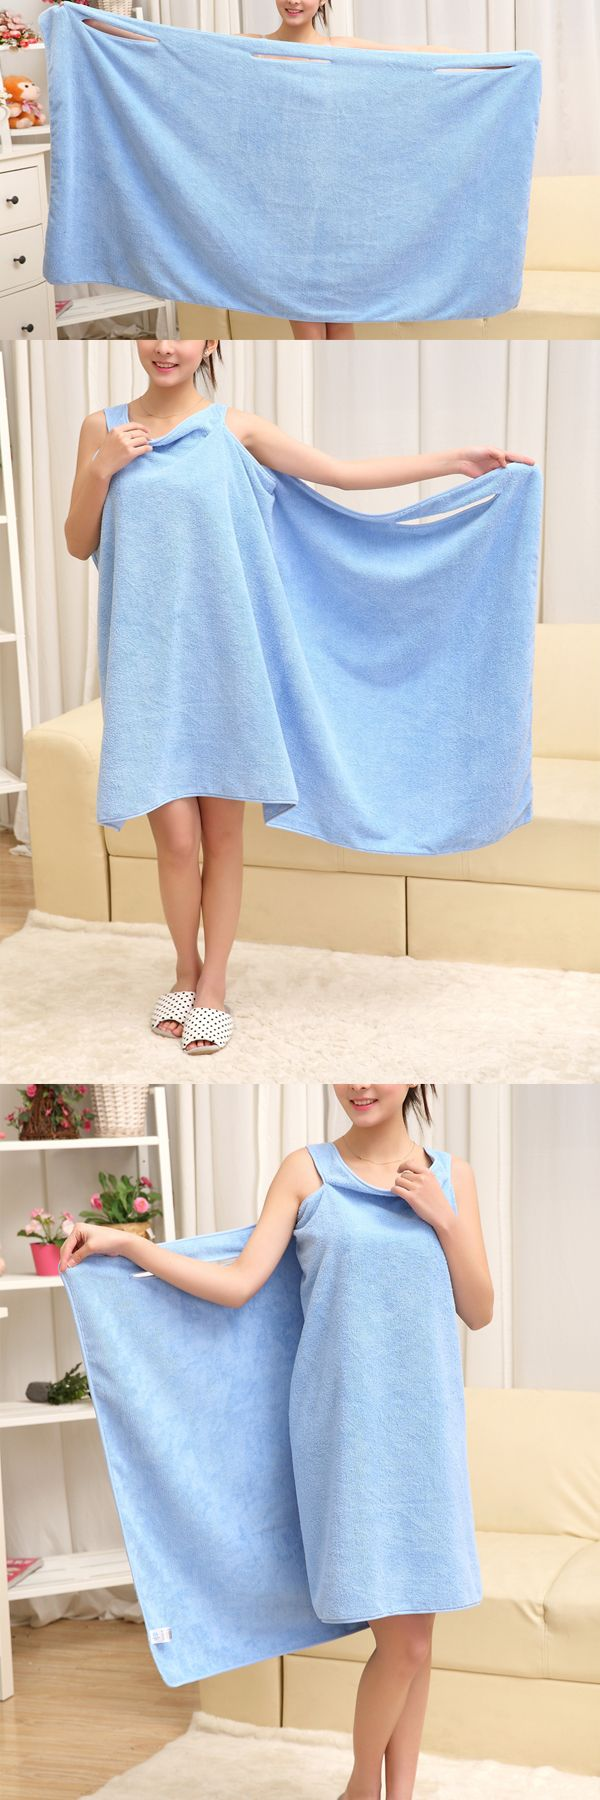 A towel can be a skirt Perfect for spas and dorm bathrooms This cozy warm plush fleece wrap robe